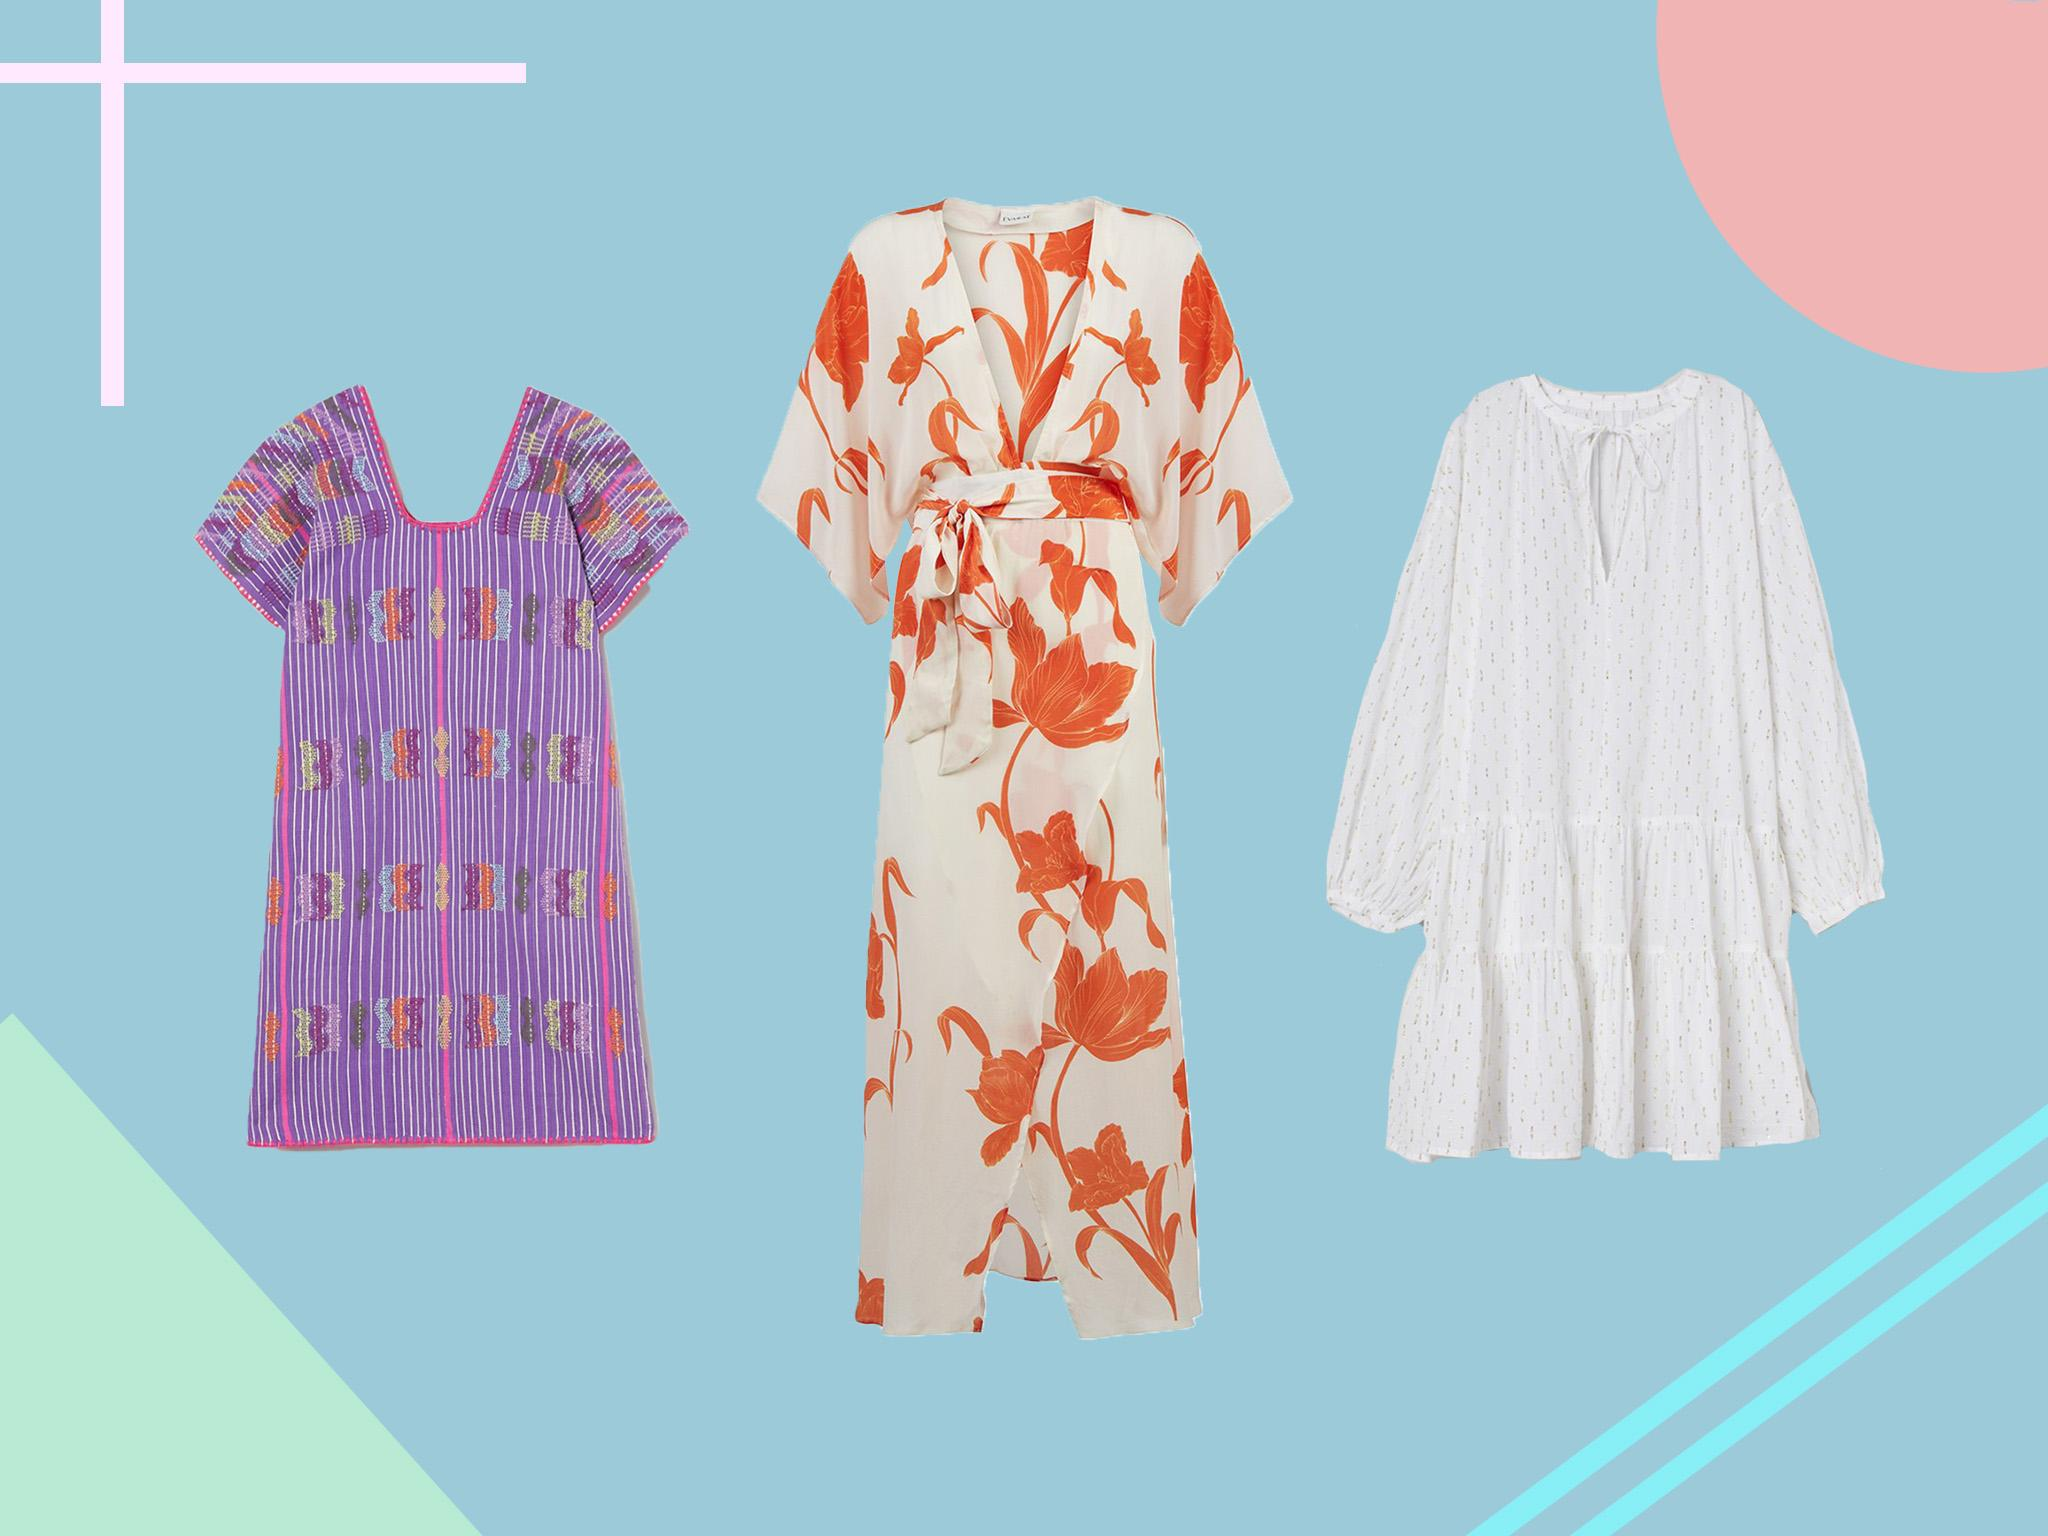 Beach Coverups Stay Stylish And Sunburn Free With Our Top Picks The Independent